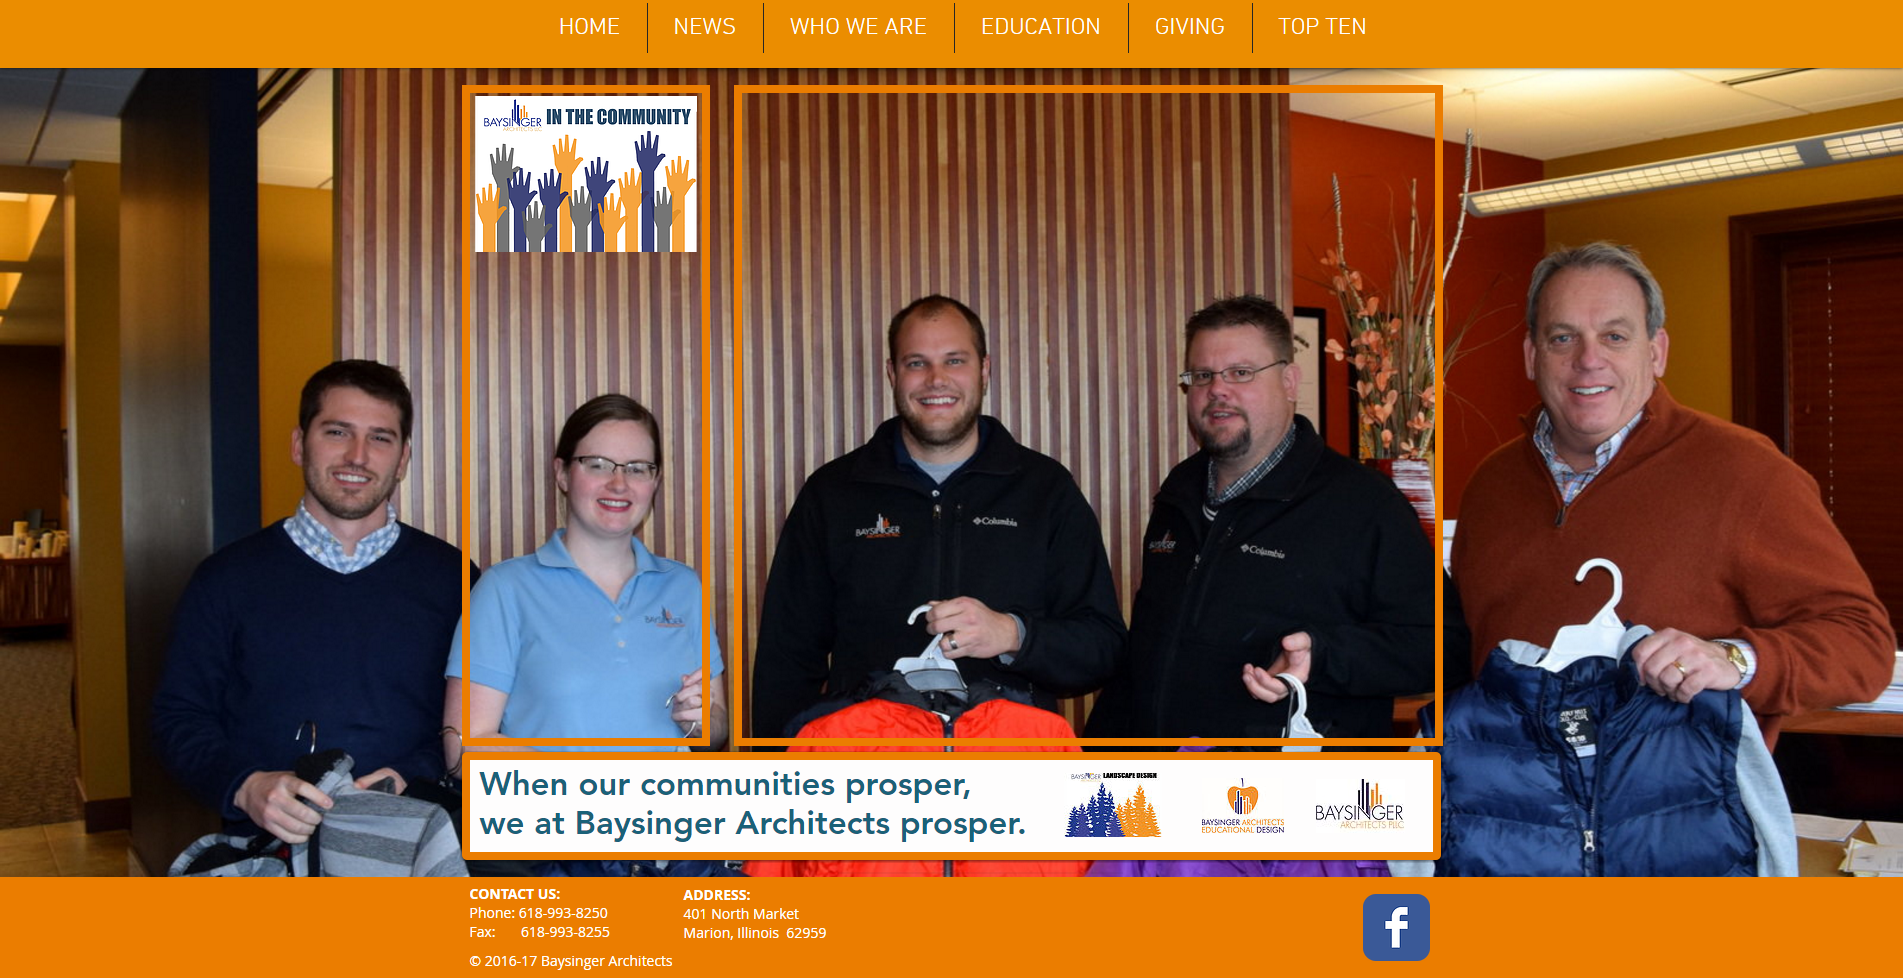 Baysinger Architects in the Community